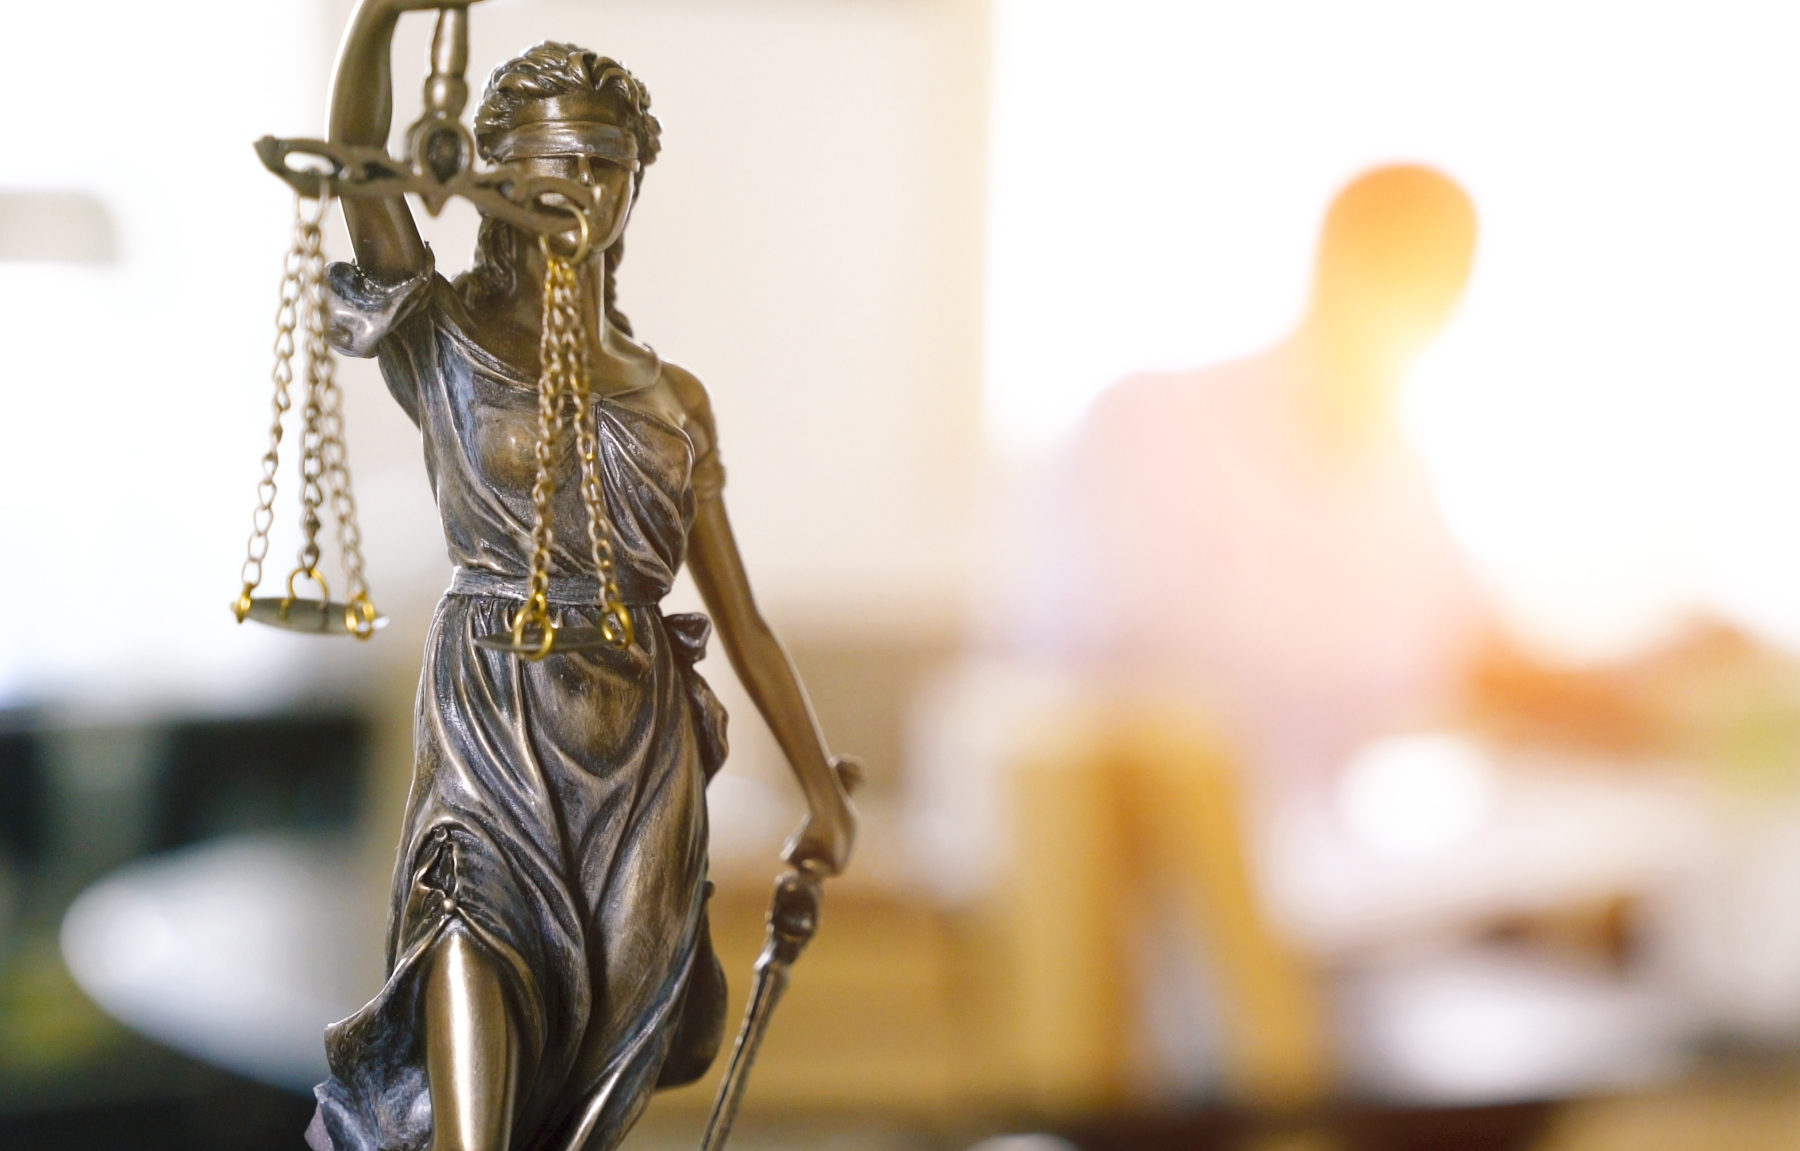 The Statue of Justice - lady justice or Iustitia / Justitia the Roman goddess of Justice in lawyer office. Famous personal injury lawyers Cellino & Barnes are currently experiencing a financial windfall despite ongoing legal hostilities. (Photo by Alexander Kirch/EyeEm/Getty Images)